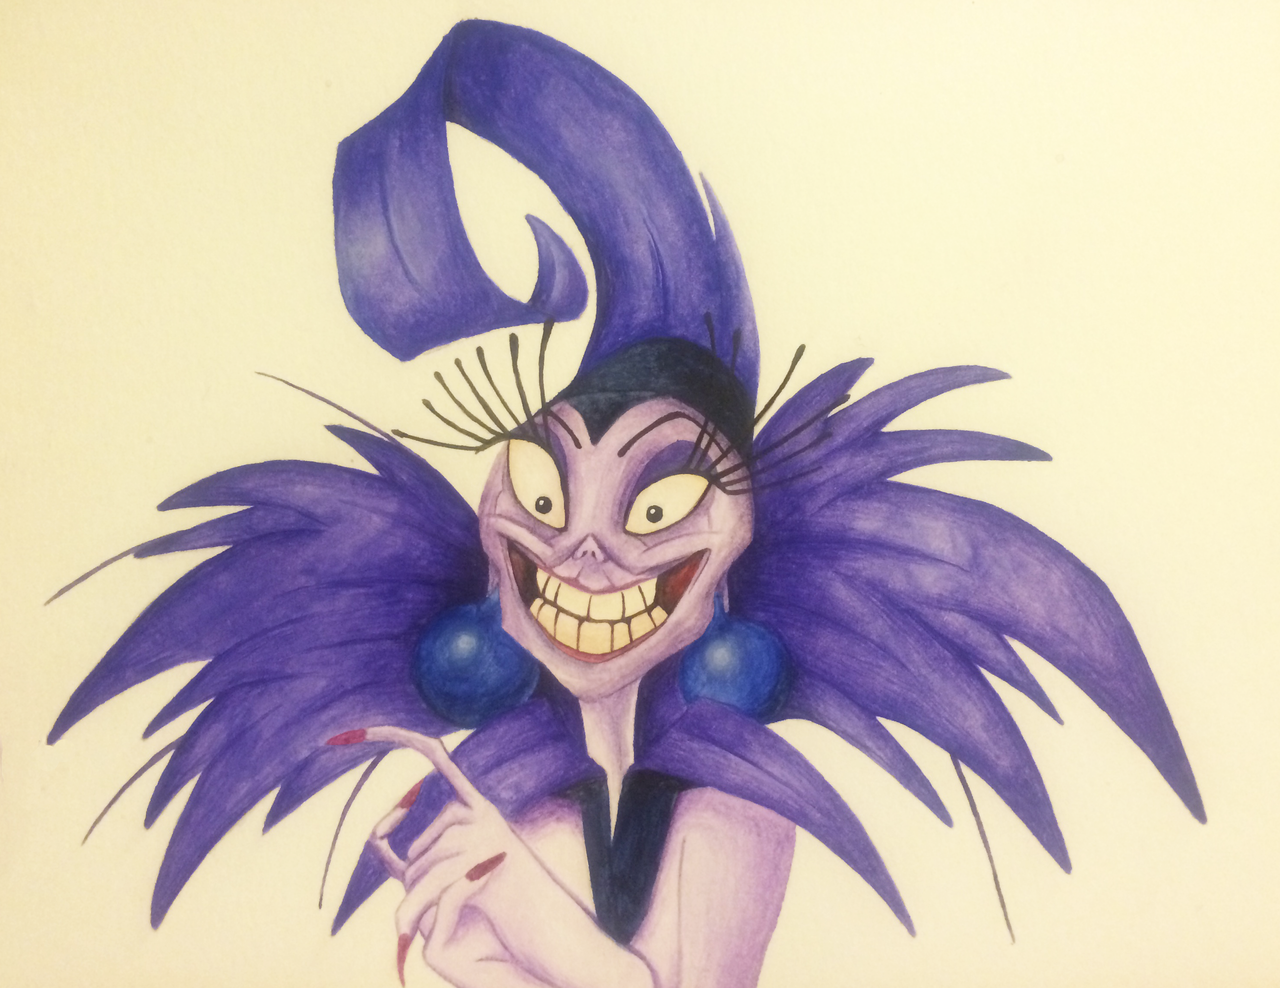 Yzma By Xxcharlotteoxx On DeviantArt